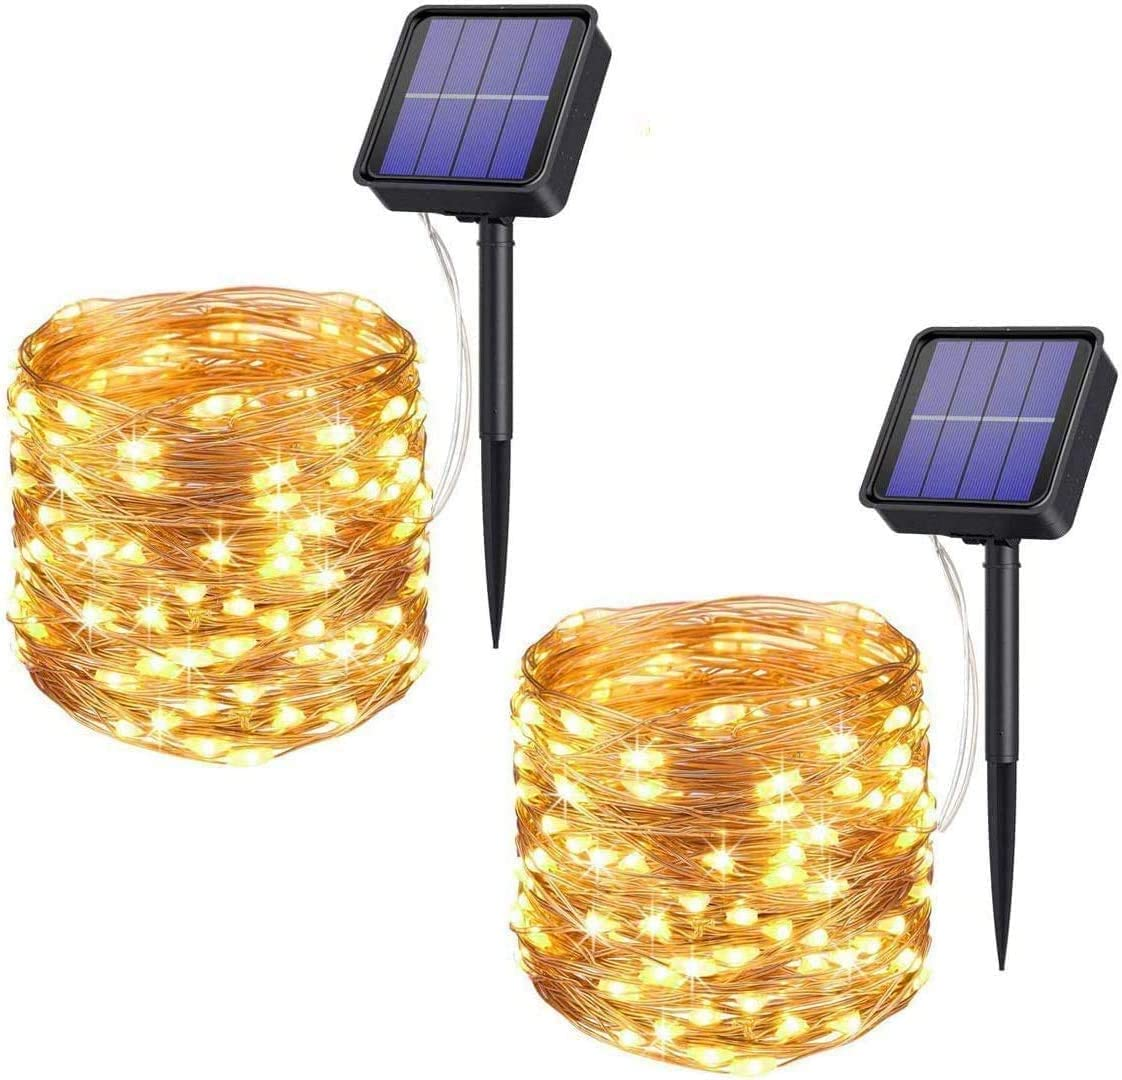 MHO+ALL Solar Fairy Lights Outdoor Waterproof, 2 Pack 200 LED 79.2ft Solar Powered String Lights, Solar Copper Wire Lights Firefly Lights for Indoor Outdoor Yard Trees Christmas Wedding Party Decor